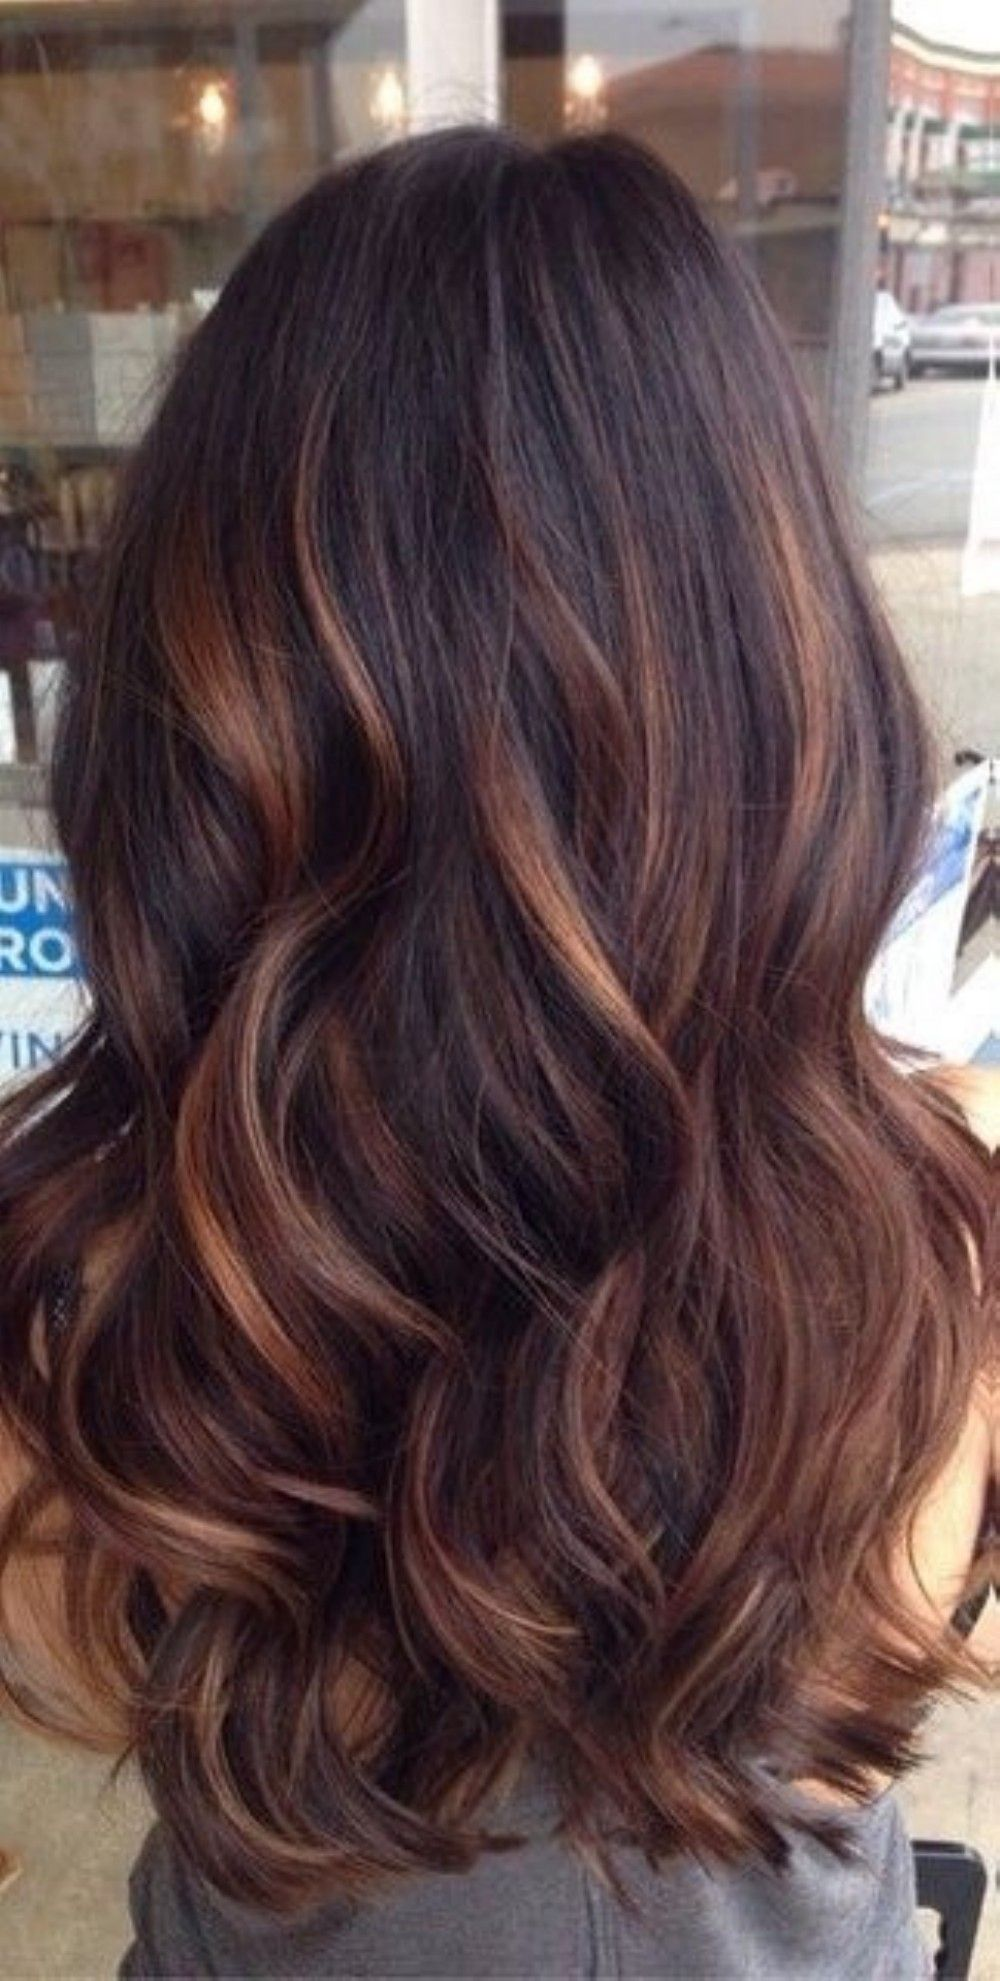 Awesome top brunette hair color ideas to try from